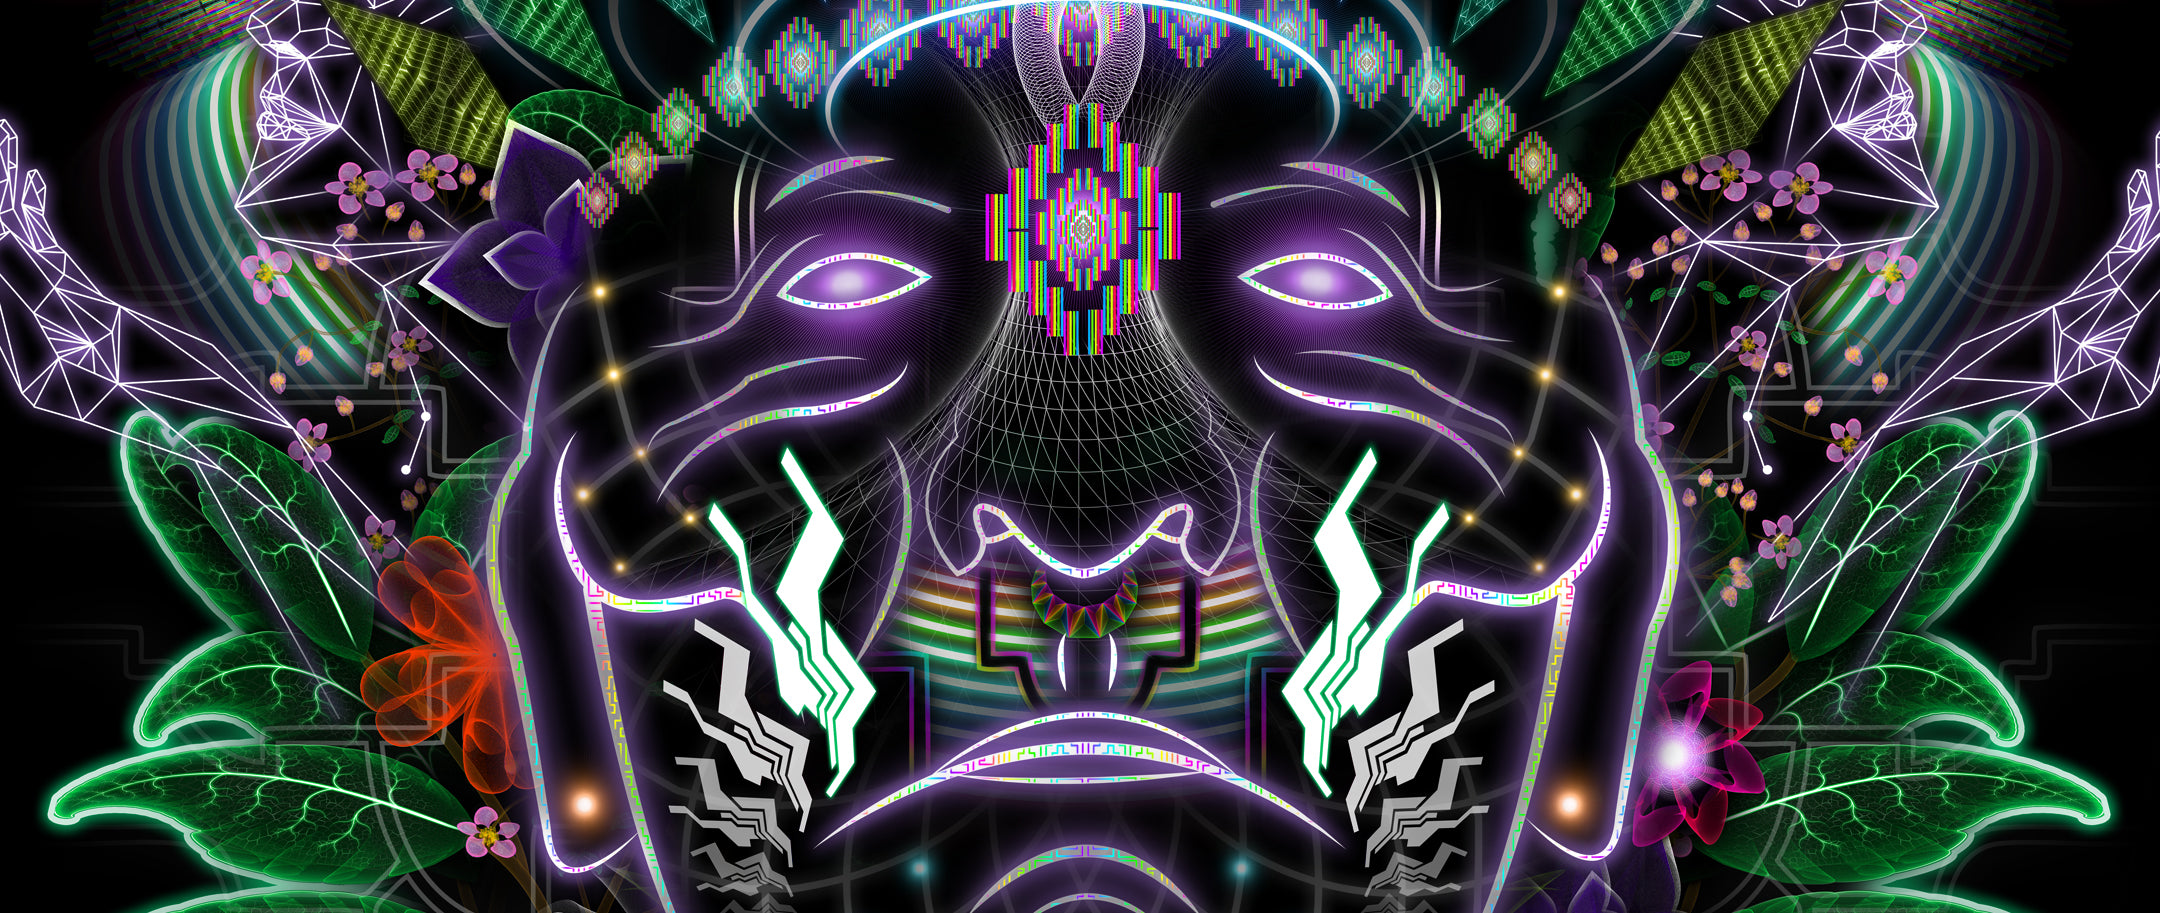 Ayahuasca: Psychedelic Art inspired by Visionary Shamans